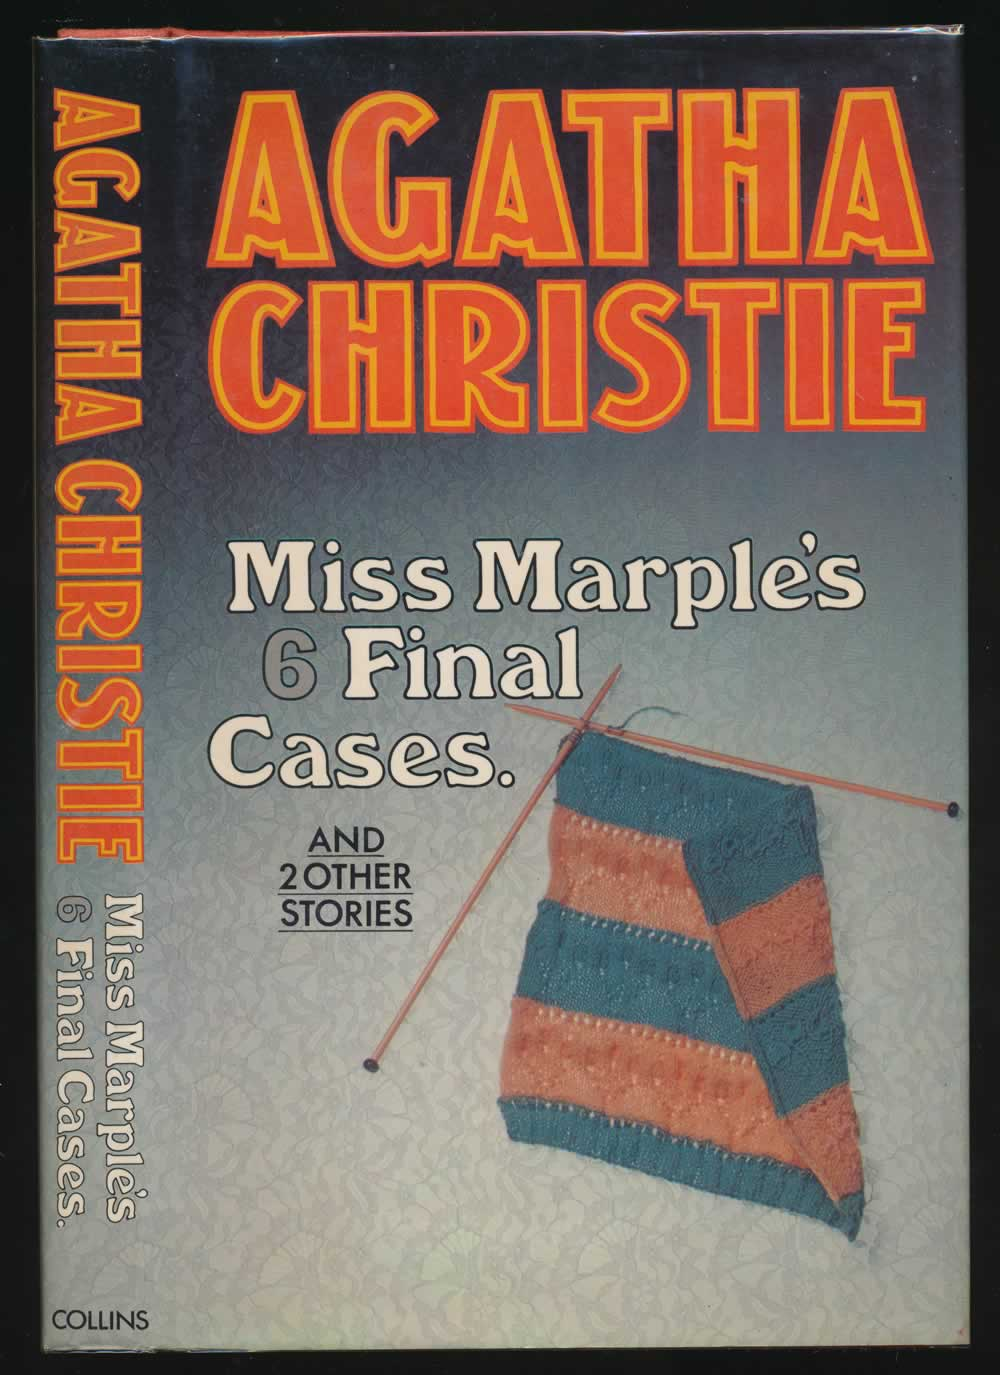 Miss Marple's final cases and two other stories